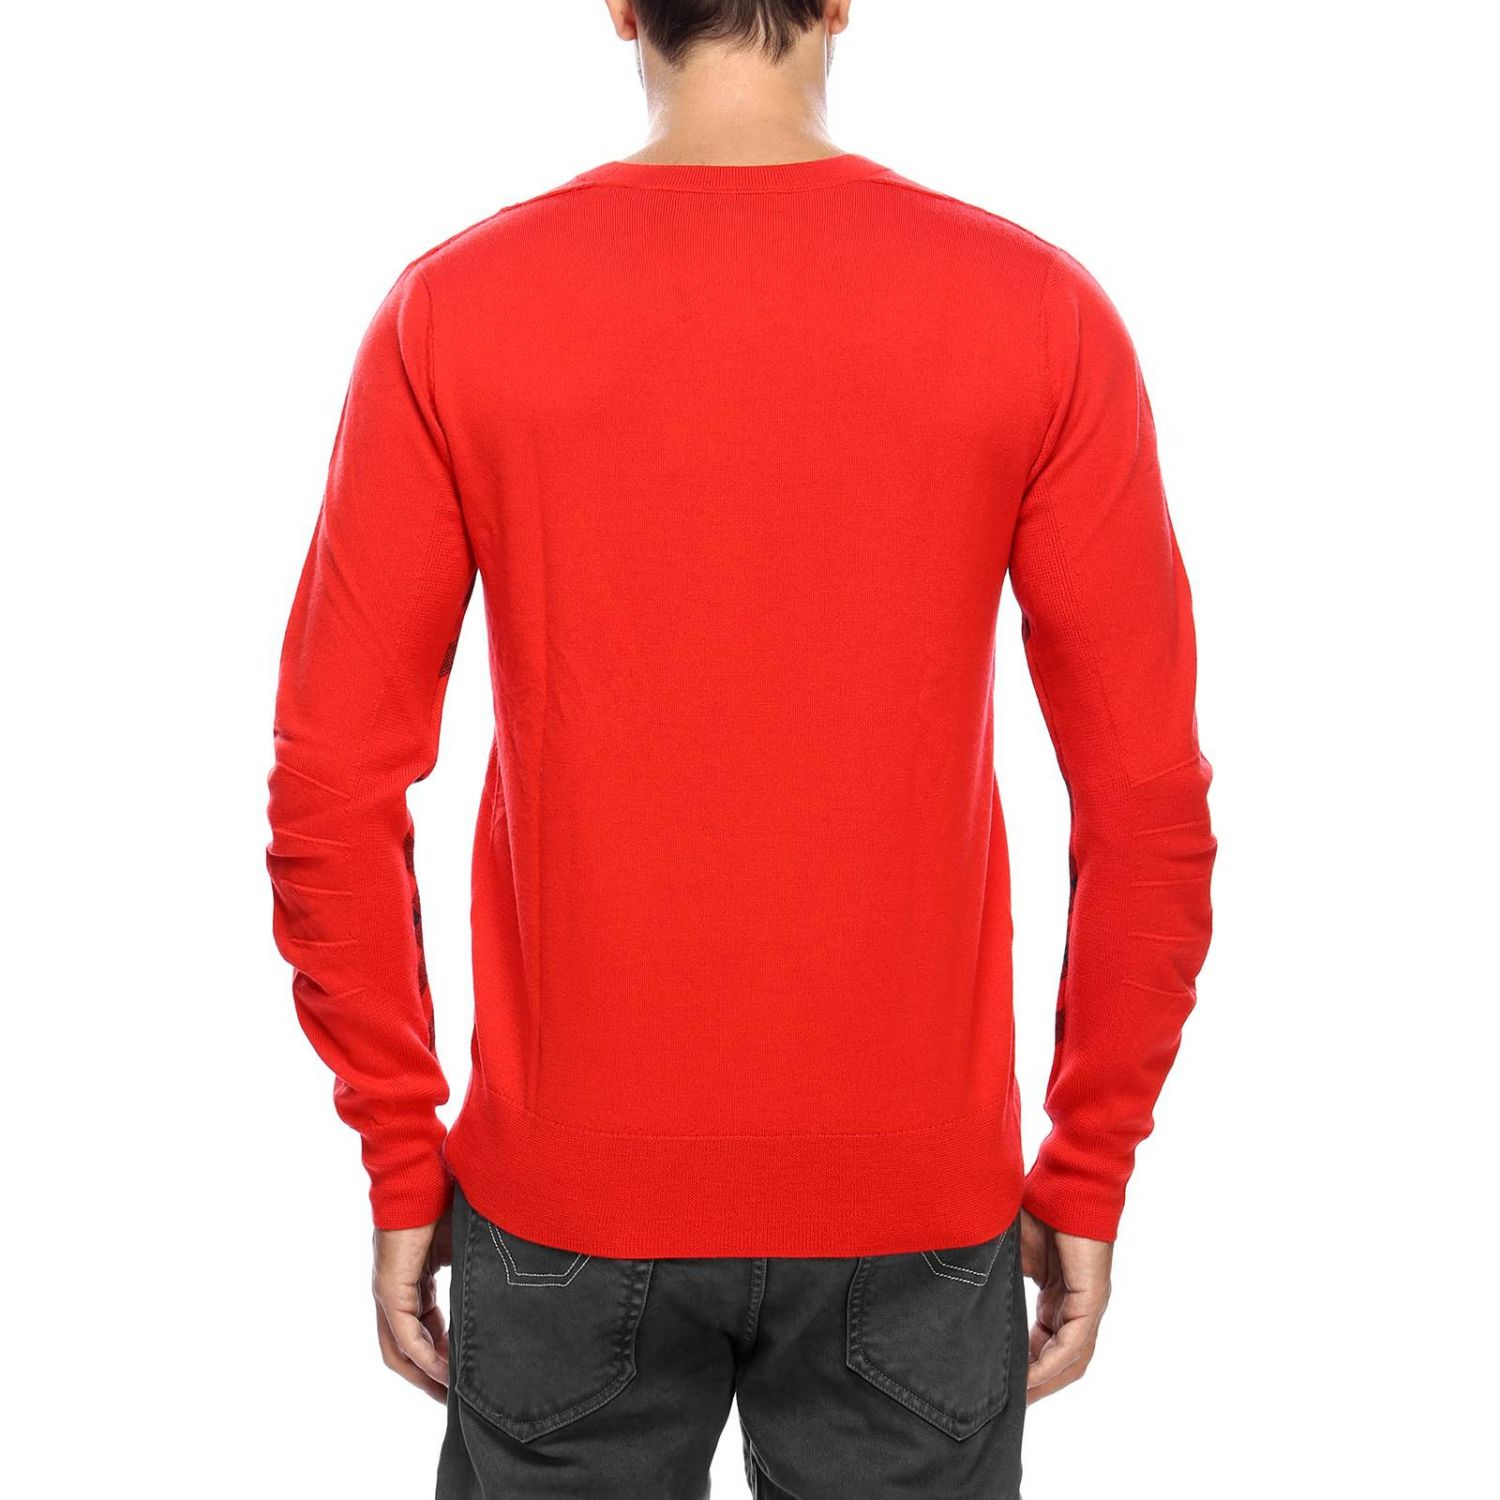 Sweater men Burberry red 3